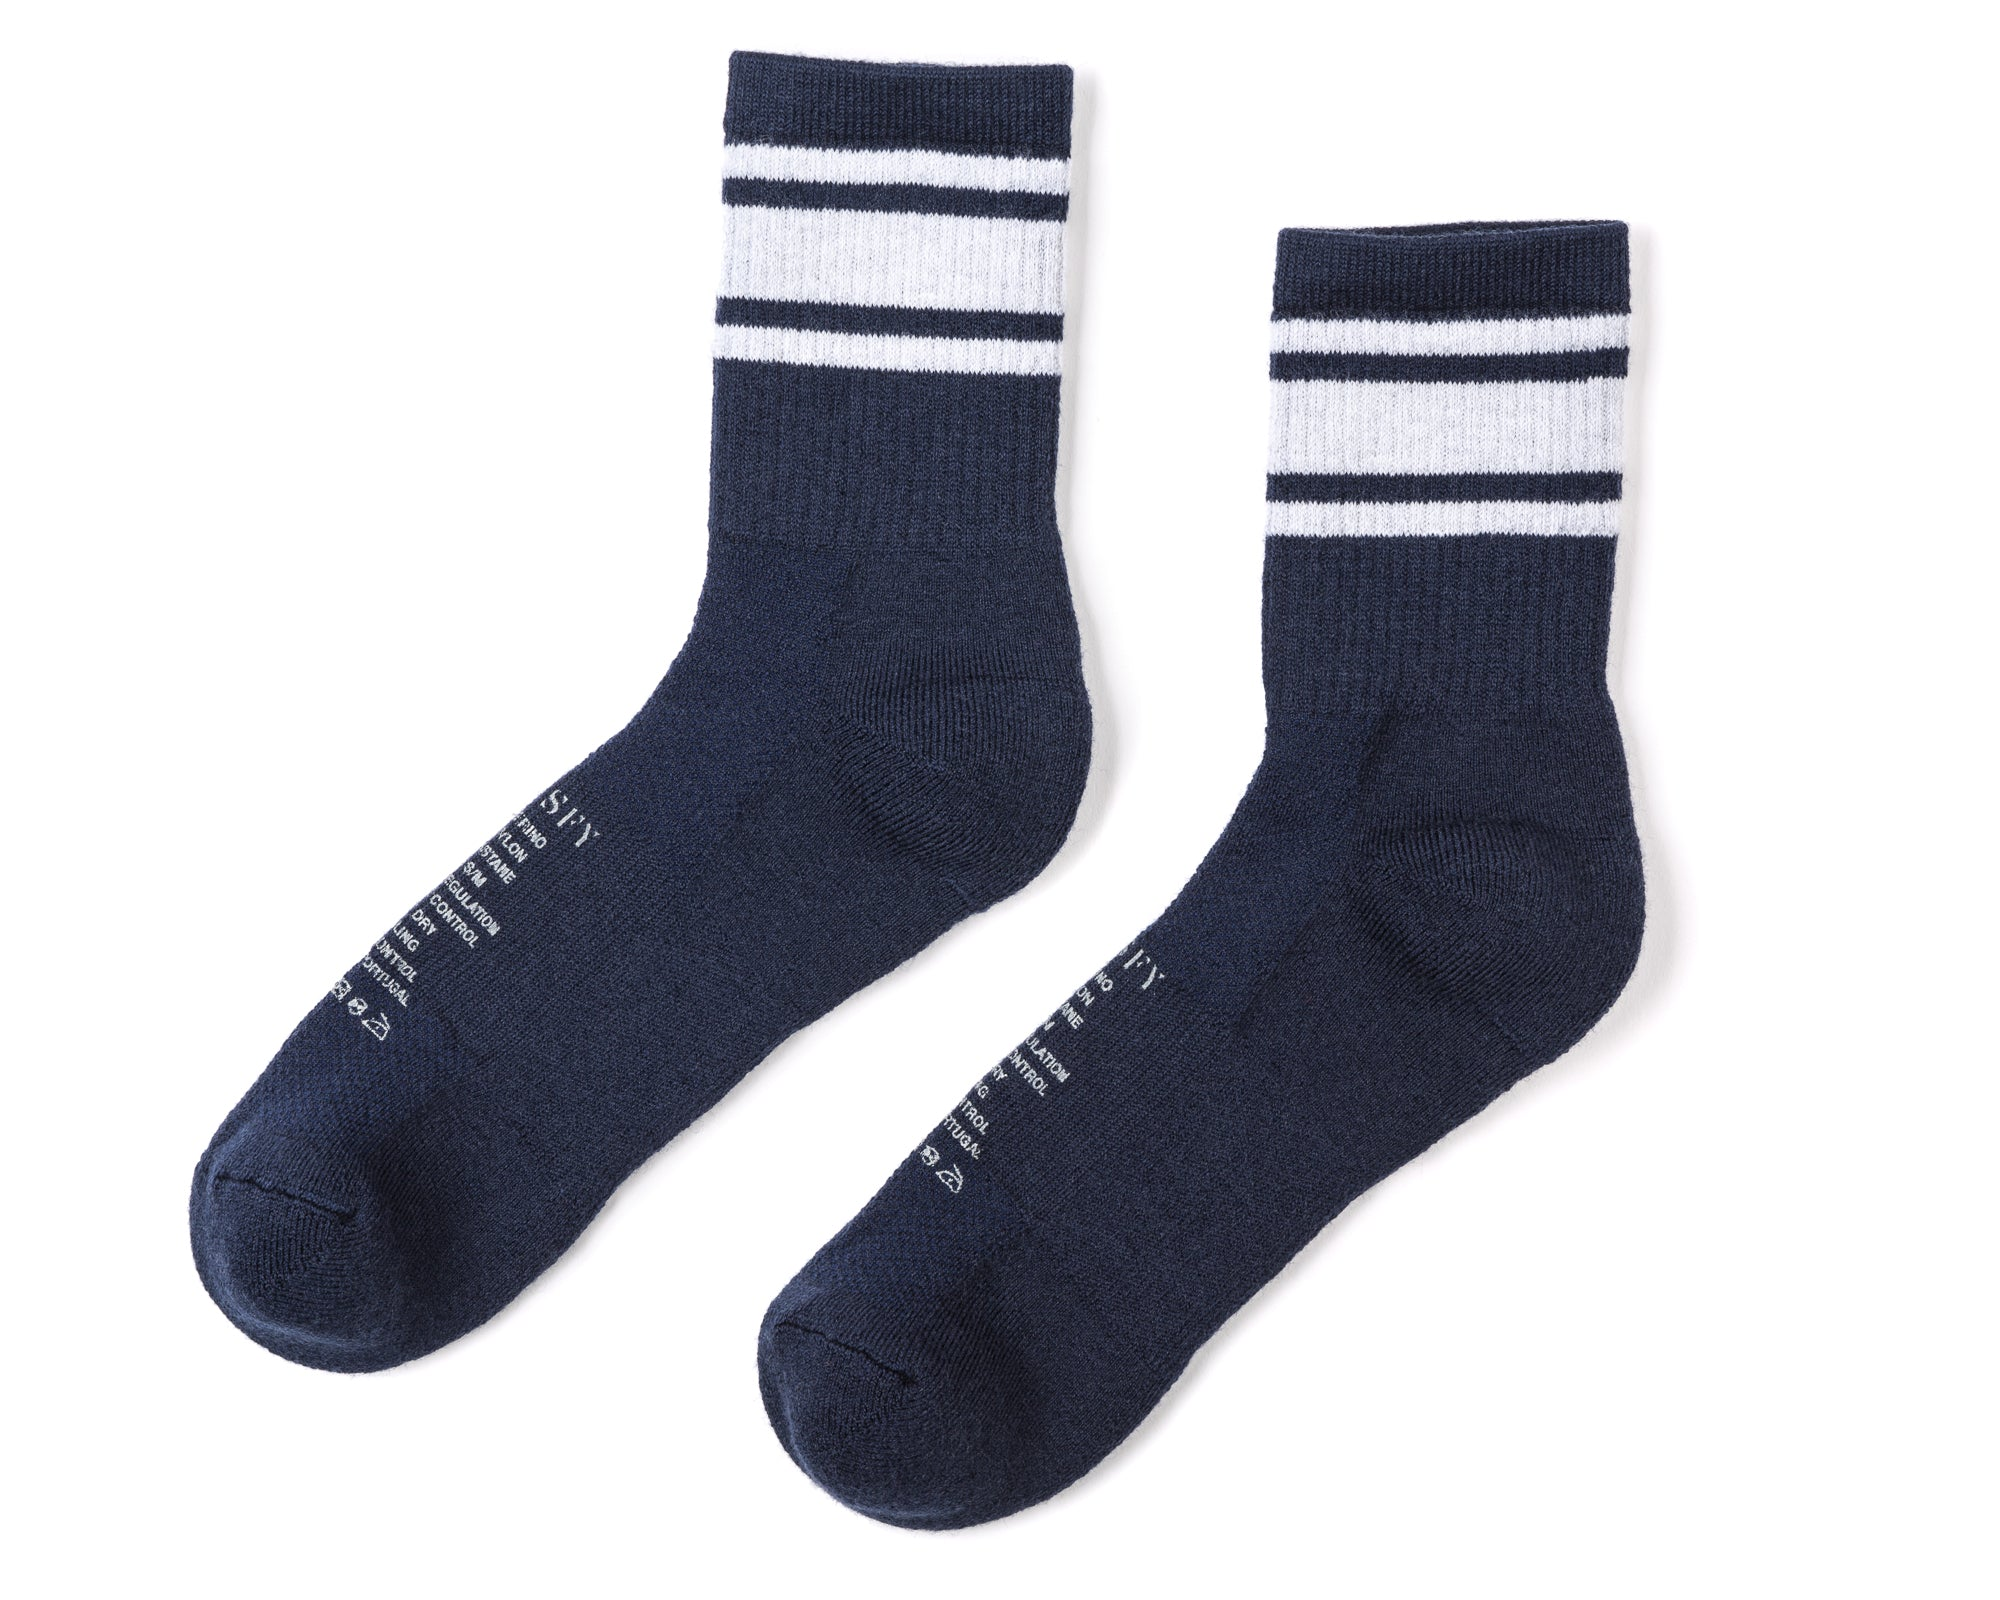 Merino Tube Socks - Navy - Left